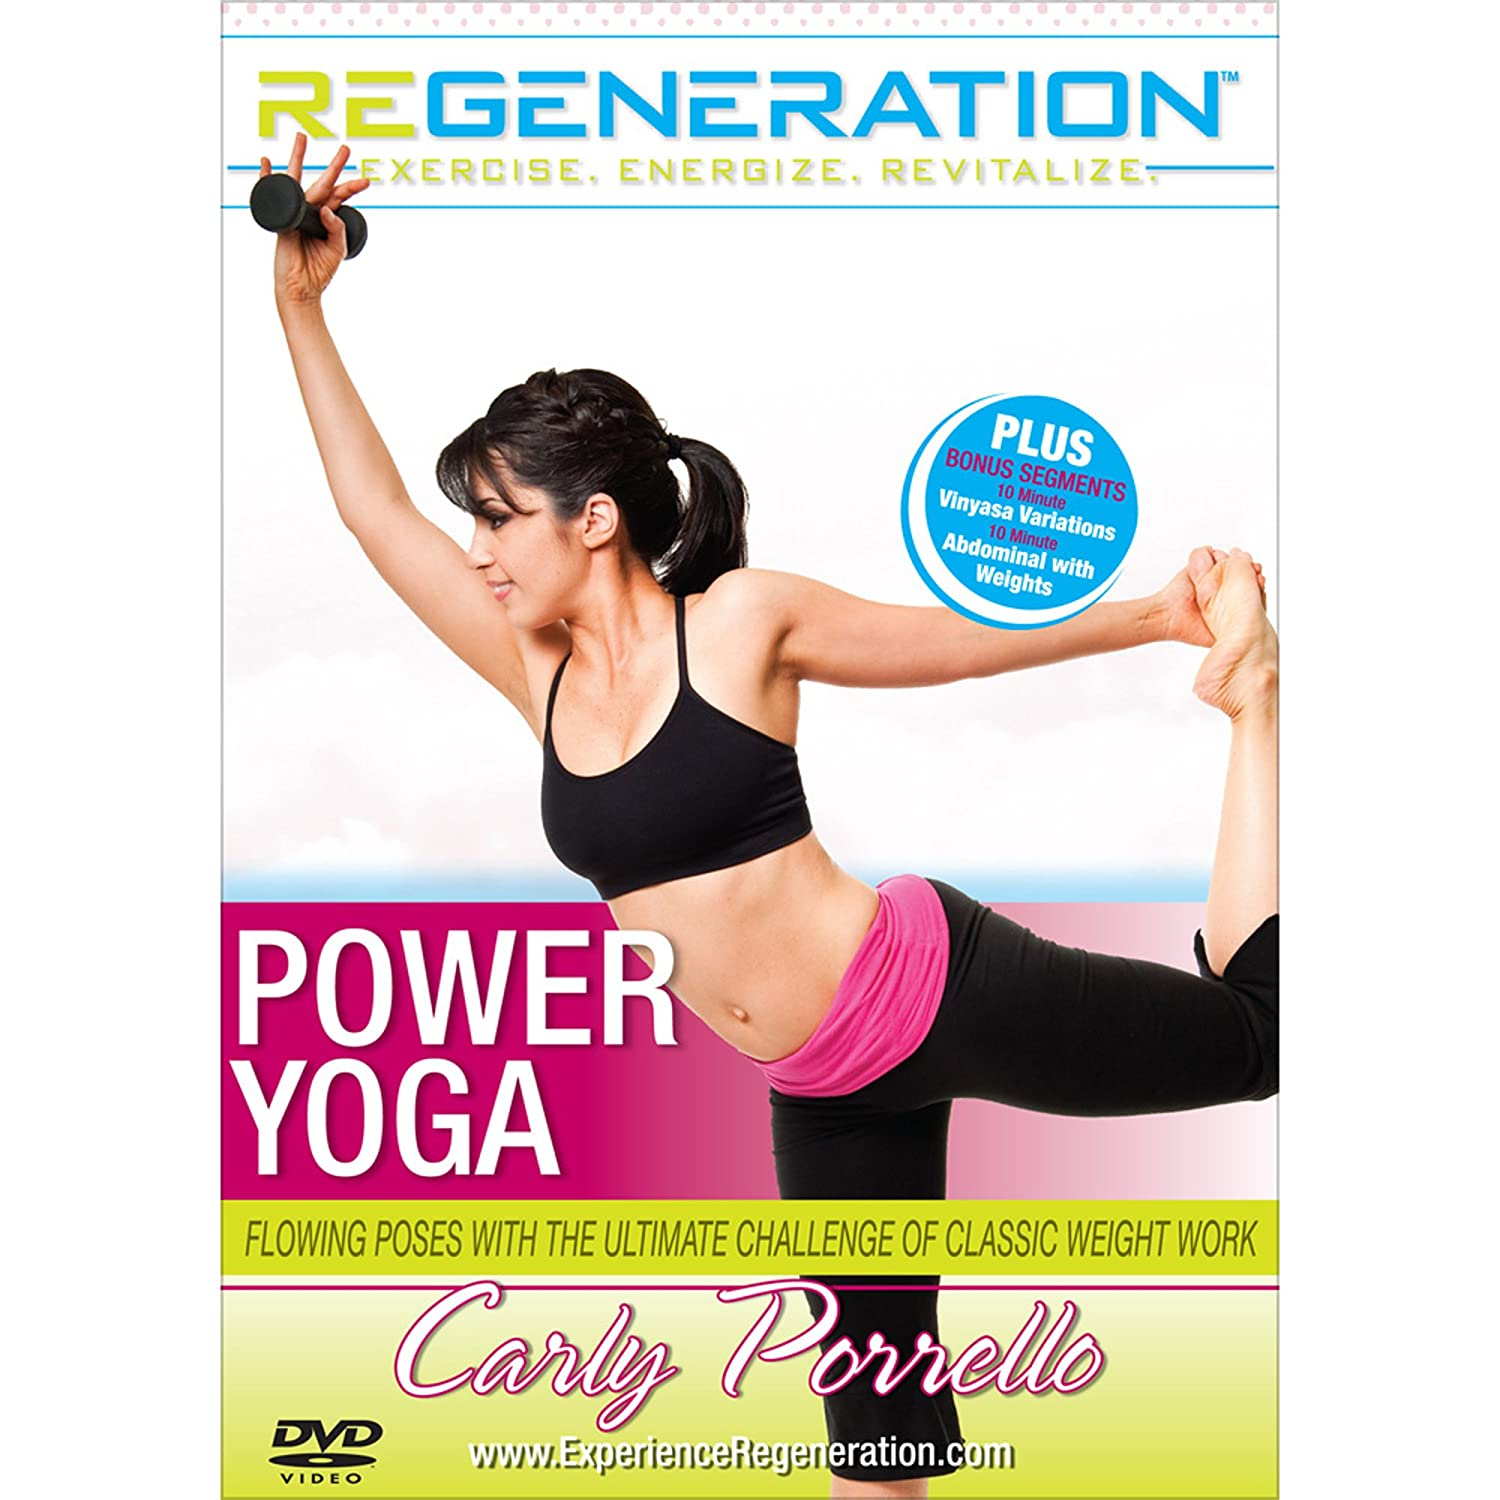 Amazon.com: Carly Porrellos Regeneration: Power Yoga: Carly ...